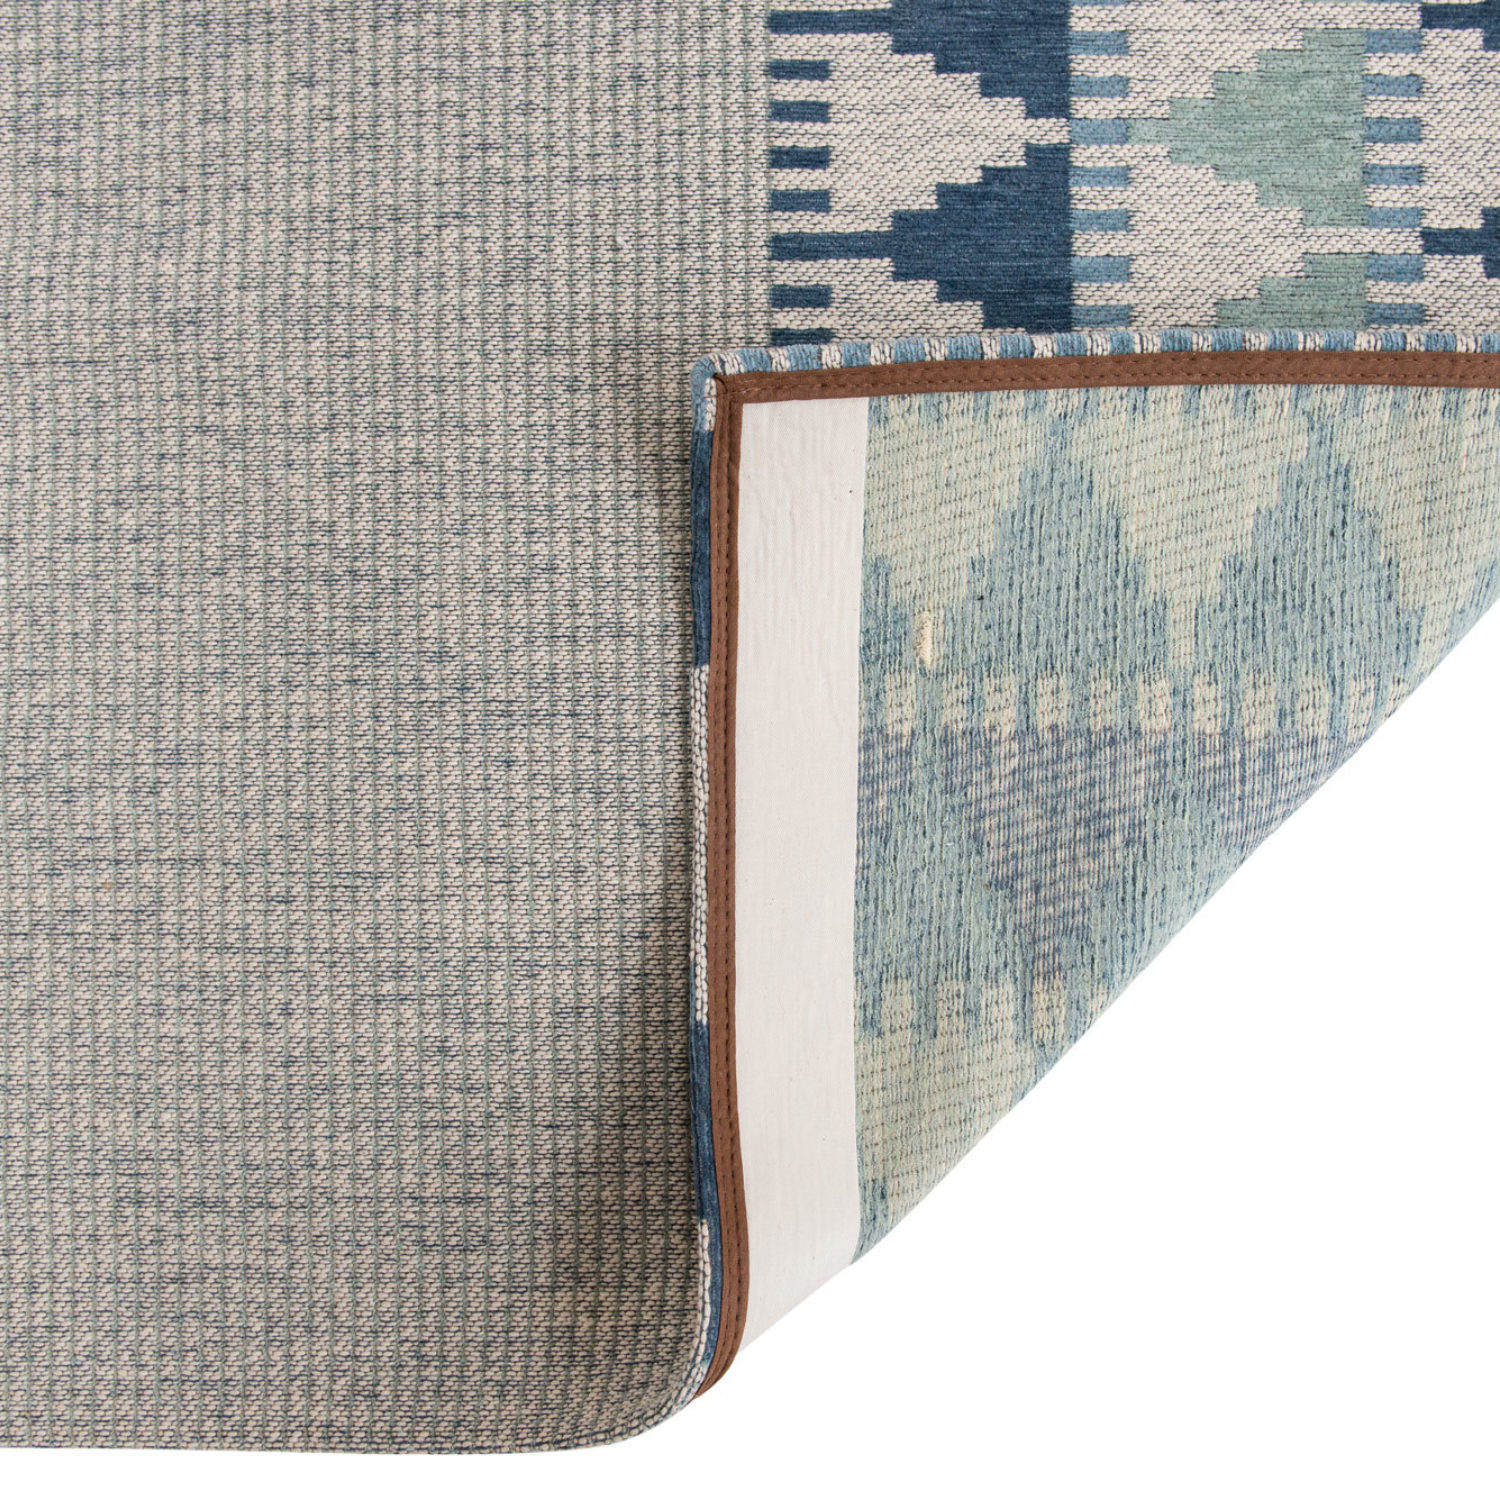 A characterful flat weave rug combining cotton chenille and wool yarns